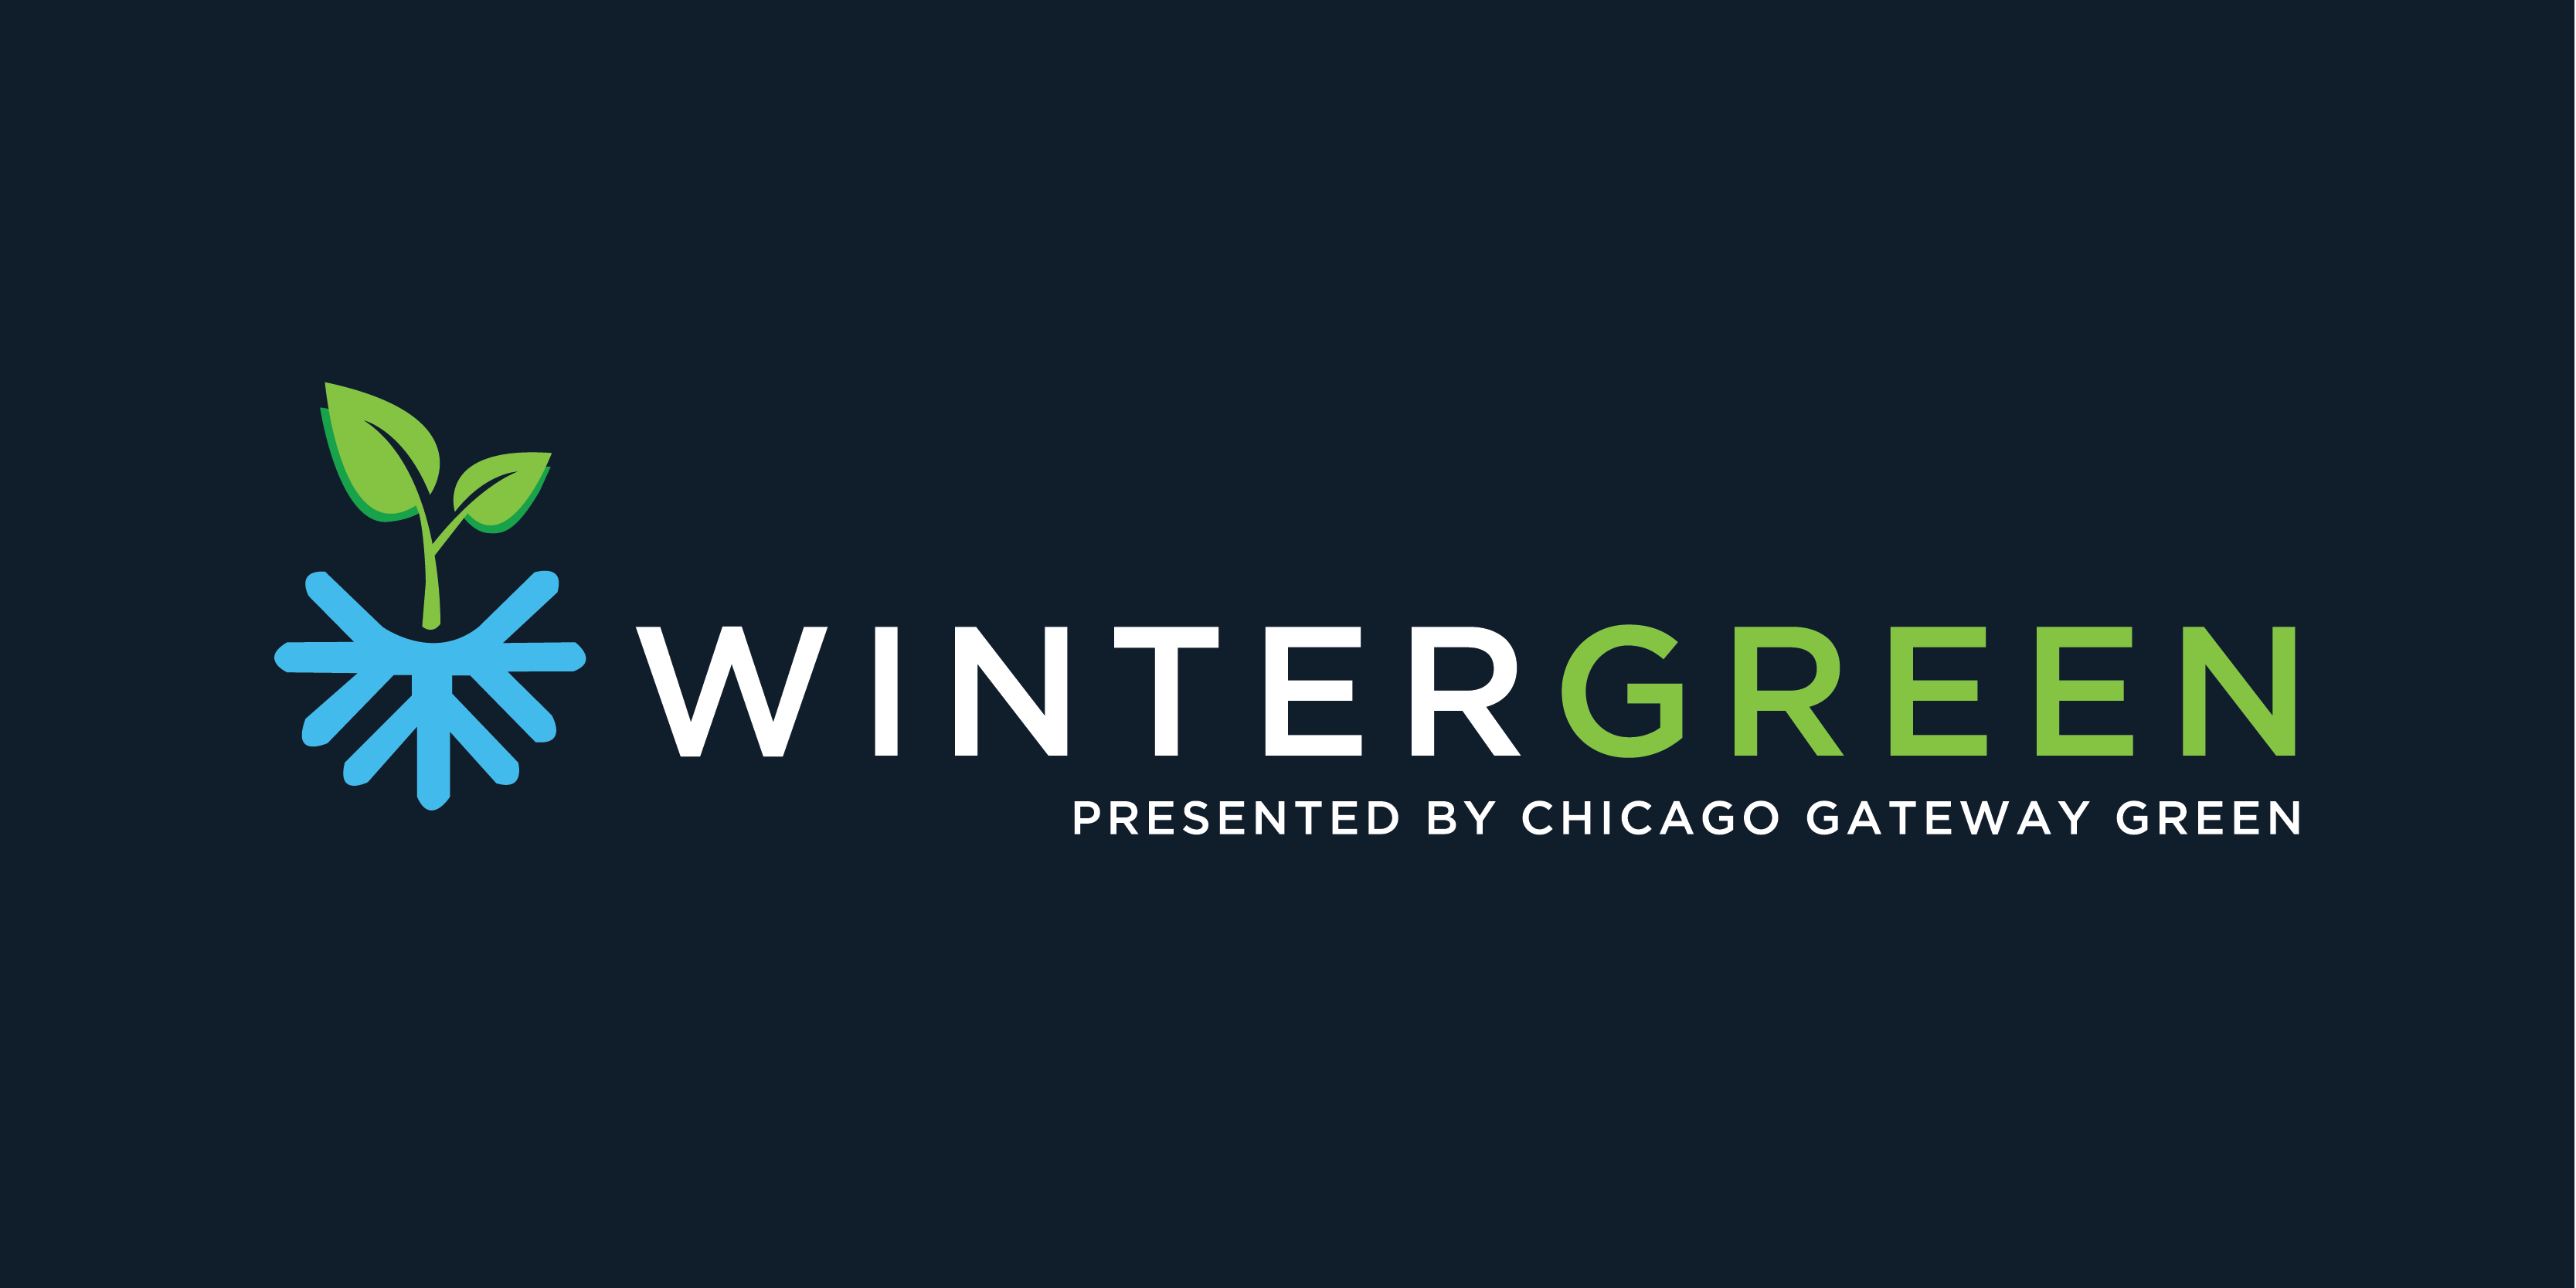 Chicago Gateway Green Presents: Wintergreen